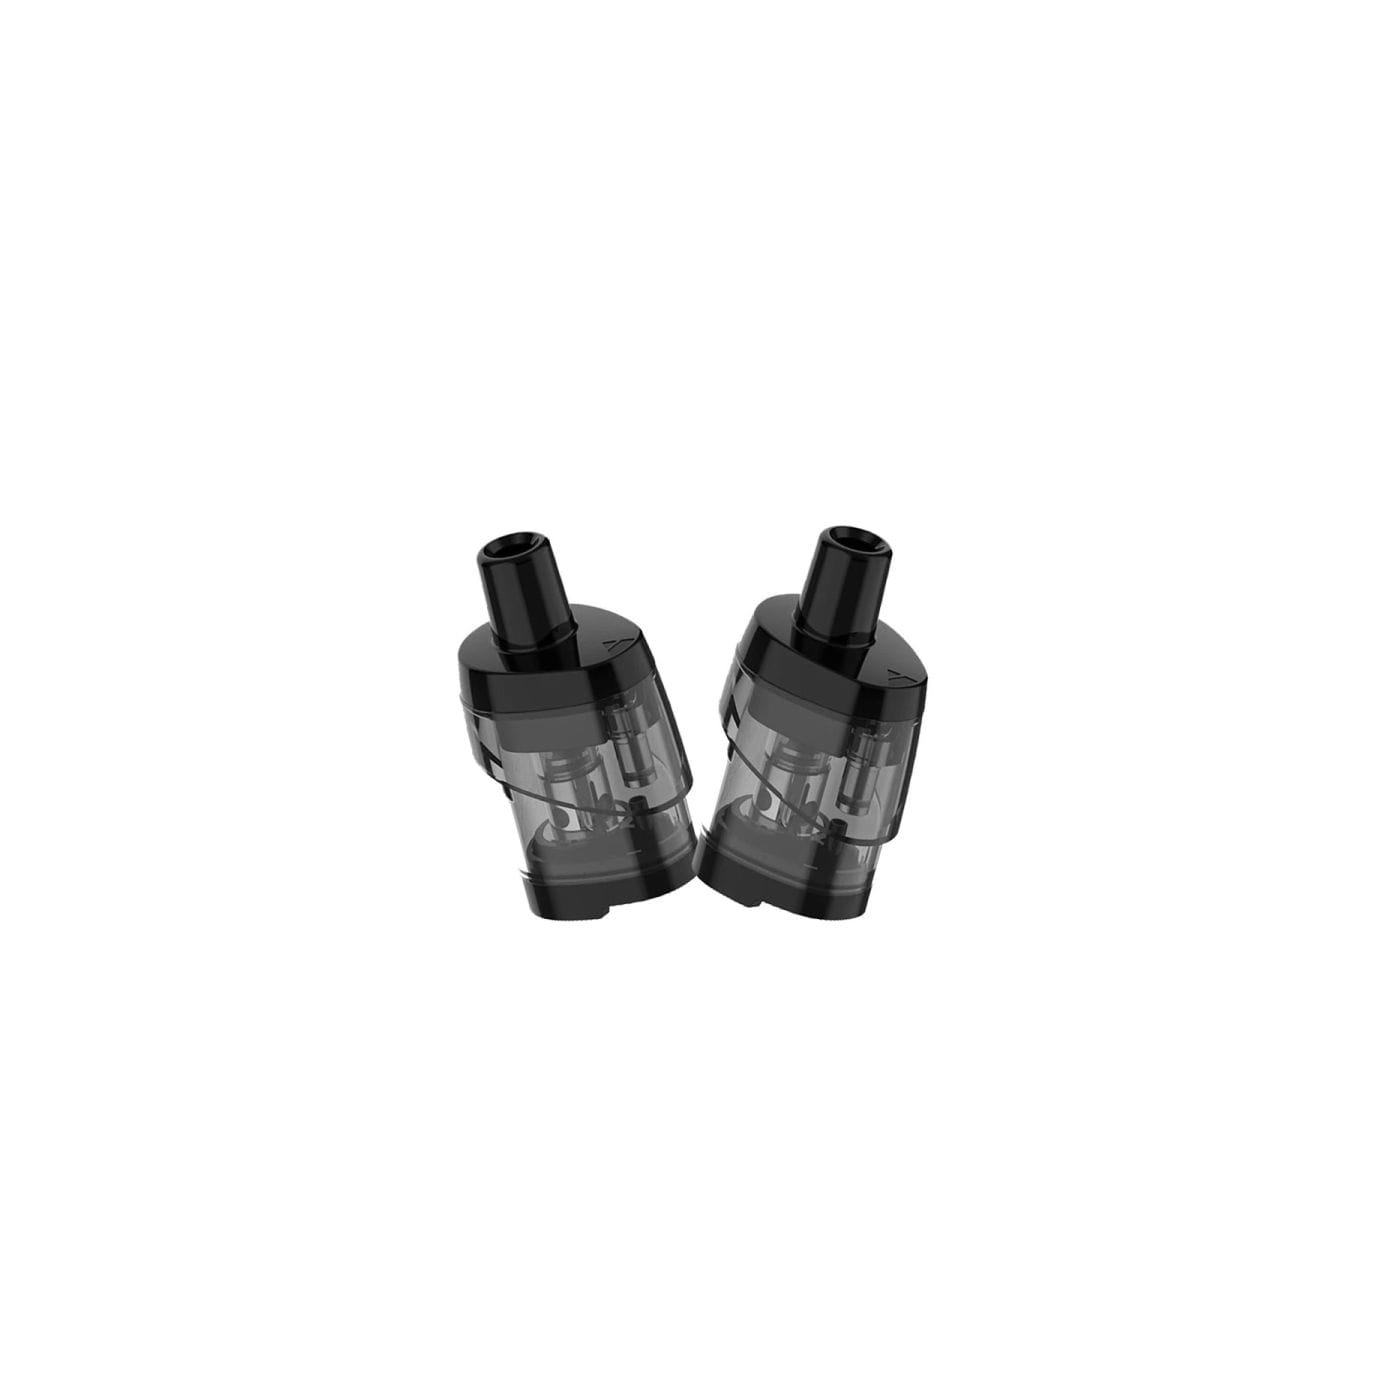 Vaporesso Target PM30 Replacement Pod - 2 Pack